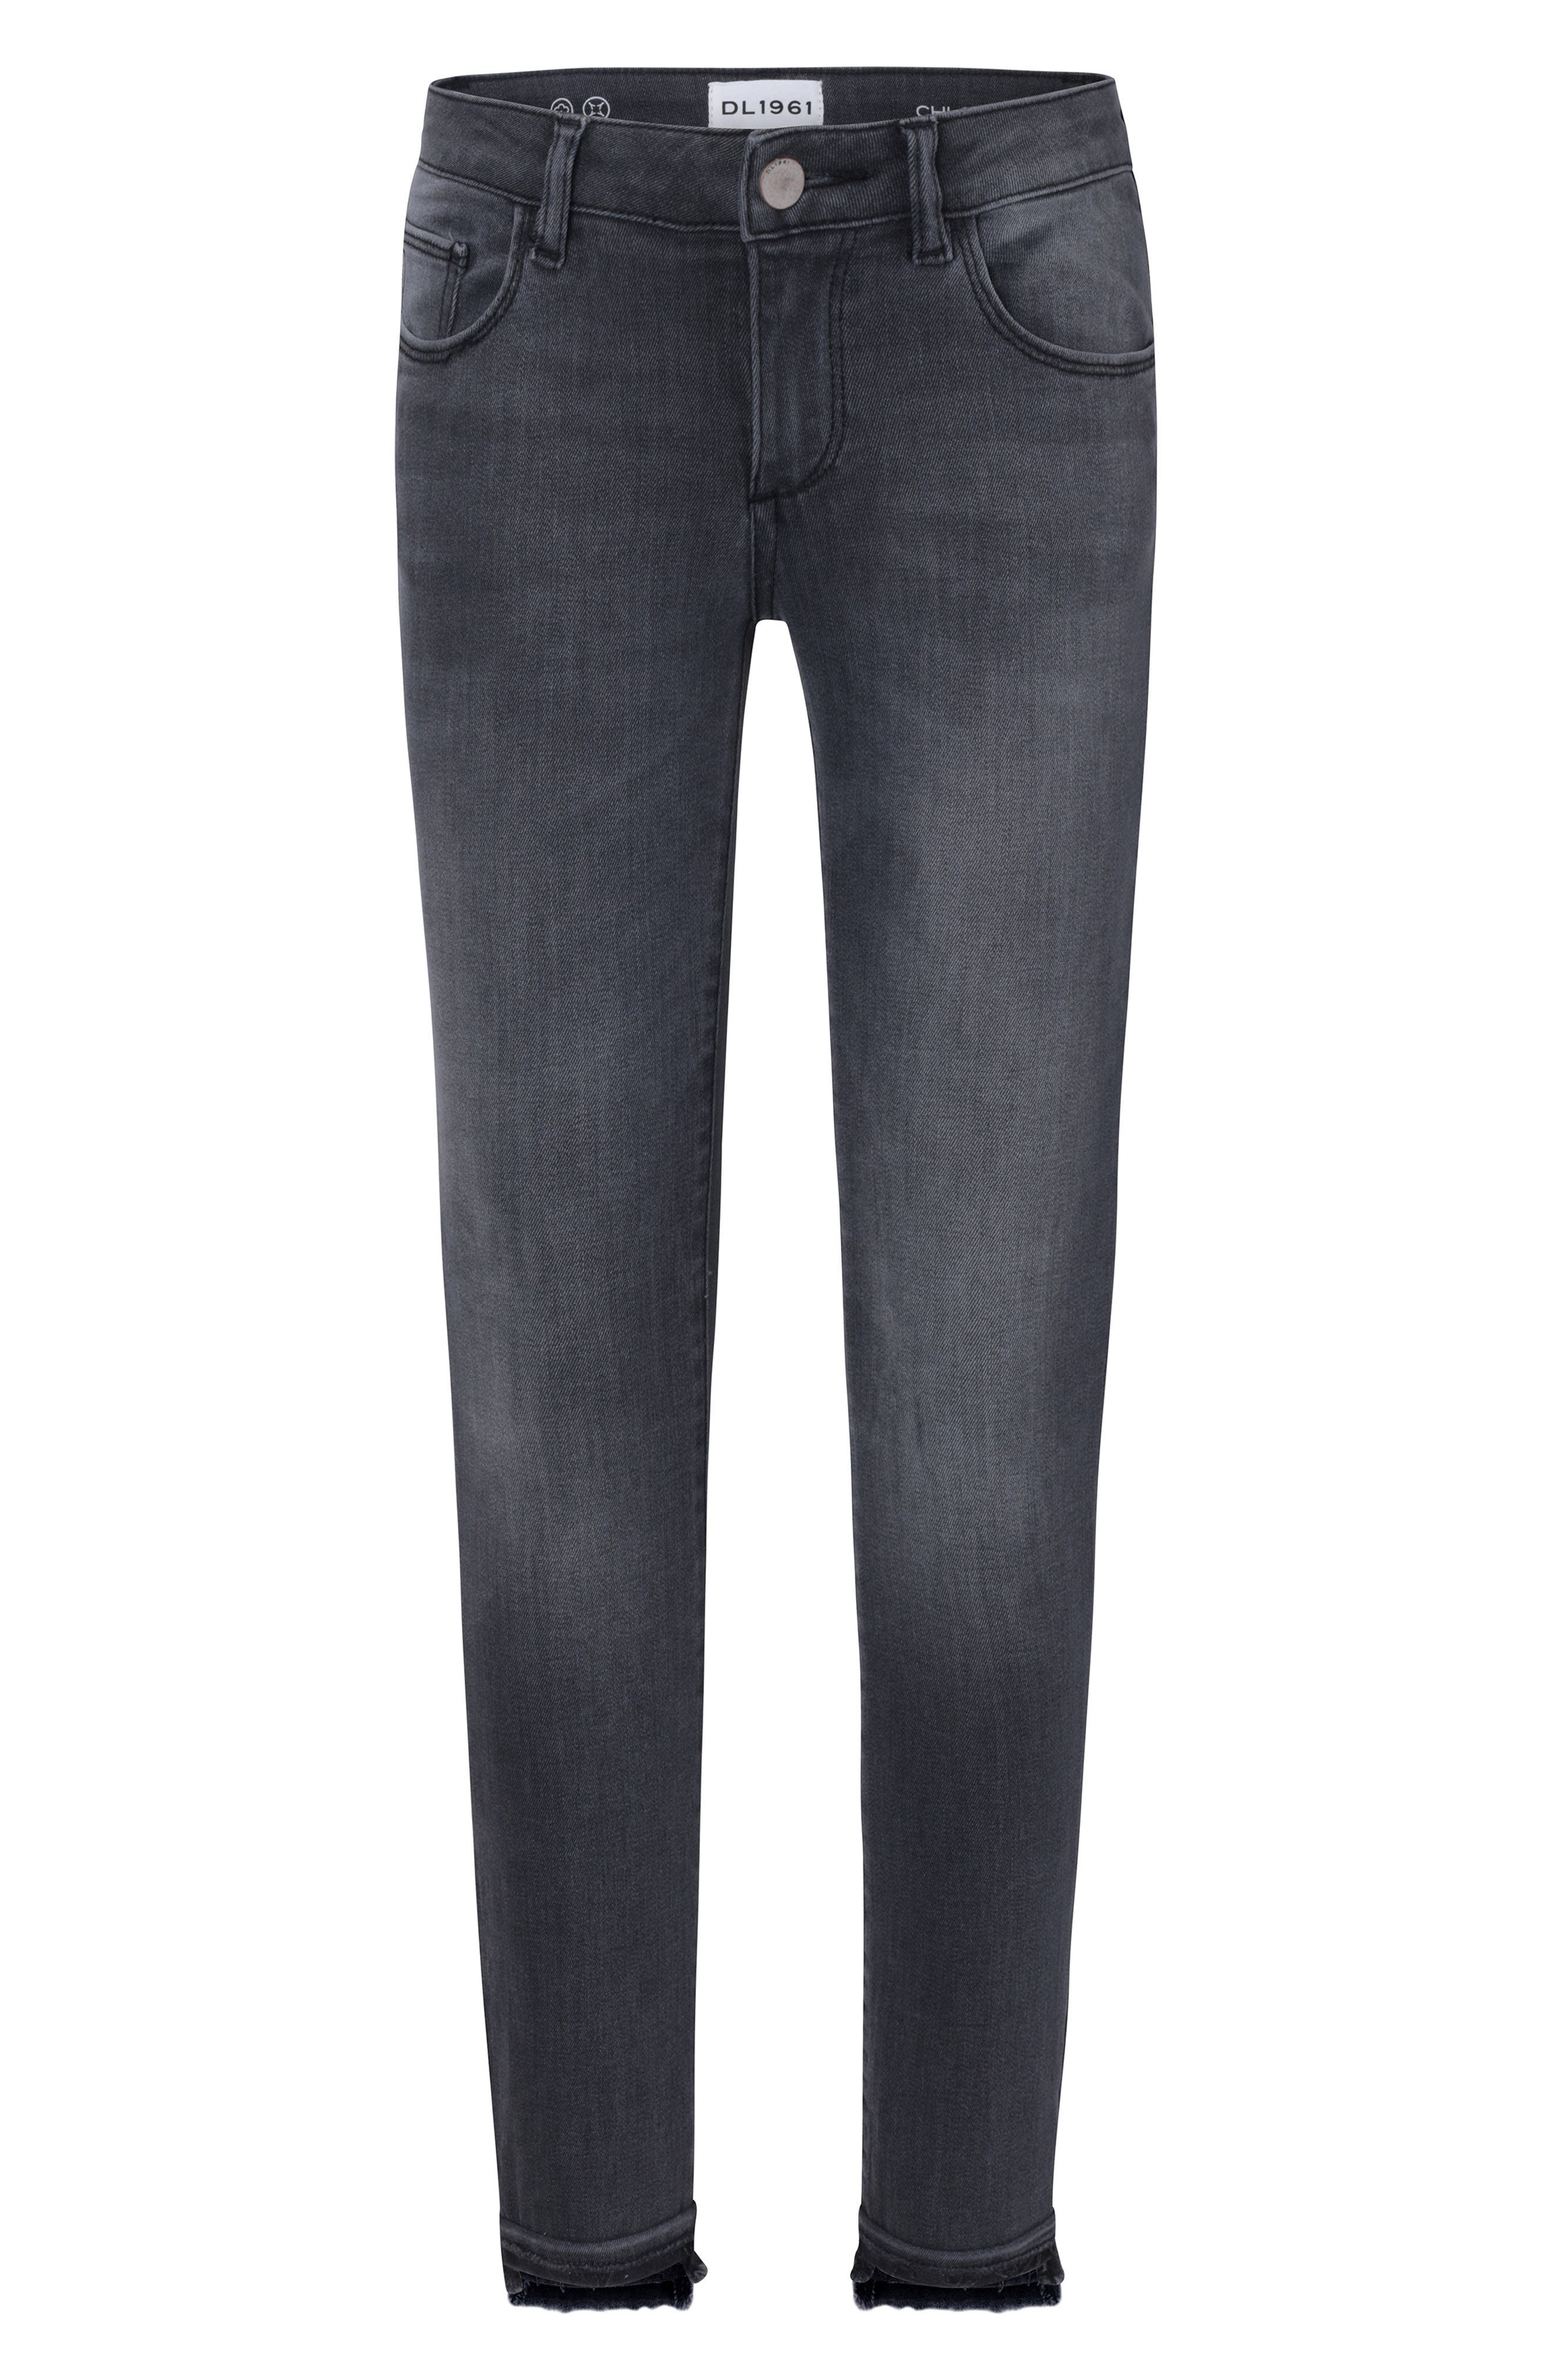 Chloe Released Step Hem Skinny Jeans,                             Main thumbnail 1, color,                             STORMY